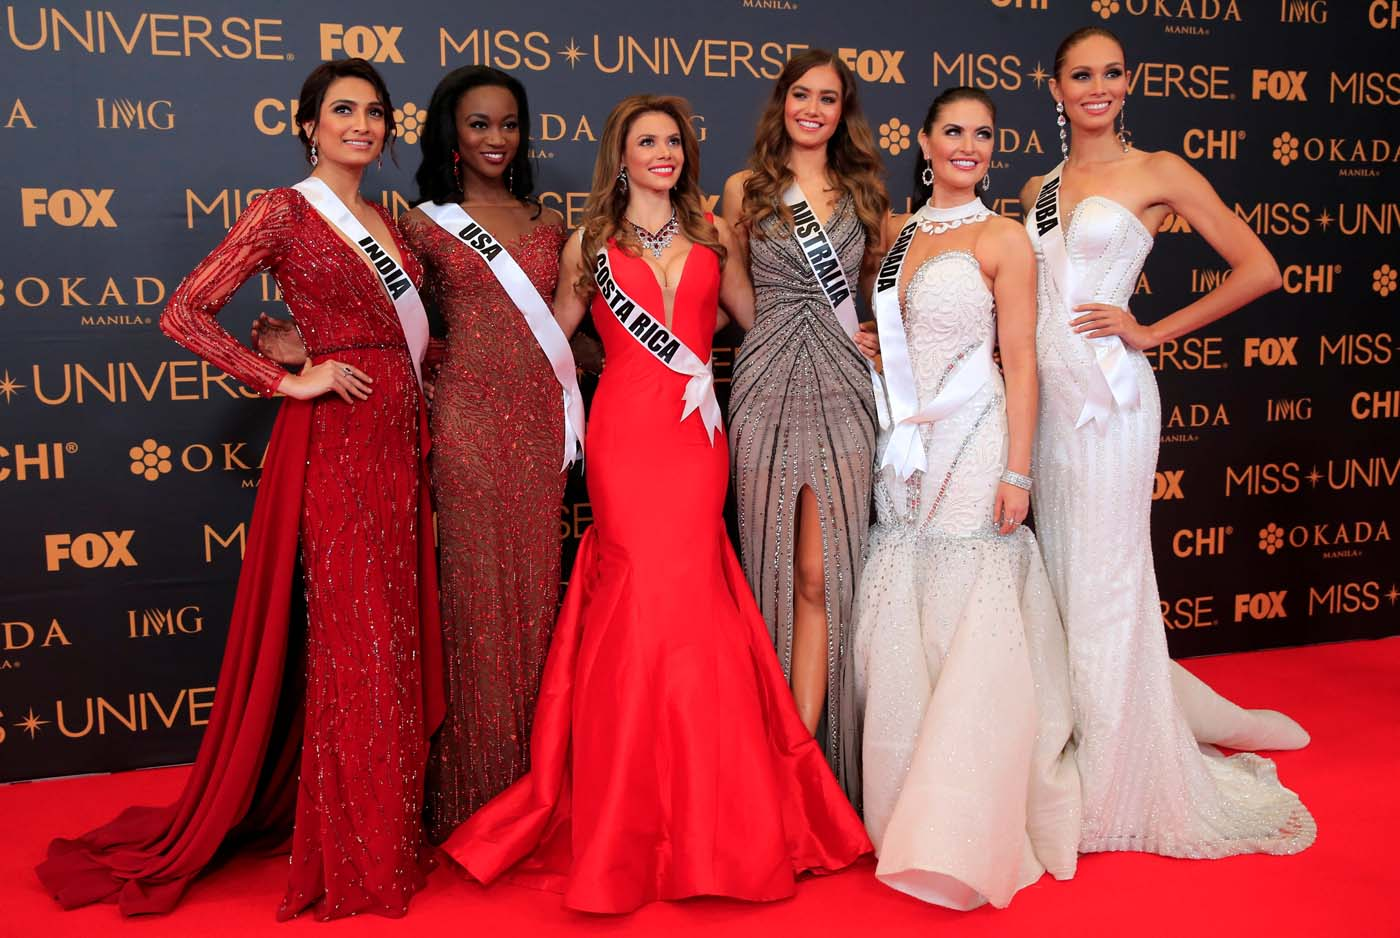 Miss Universe candidates pose for a picture during a red carpet inside a SMX convention in metro Manila, Philippines January 29, 2017. In Photo from L-R: Miss India Roshmitha Harimurthy, Miss USA Deshauna Barber, Miss Costa Rica Carolina Rodriguez, Miss Australia Caris Tiivel, Miss Canada Siera Bearchell and Miss Aruba Charlene Leslie. REUTERS/Romeo Ranoco